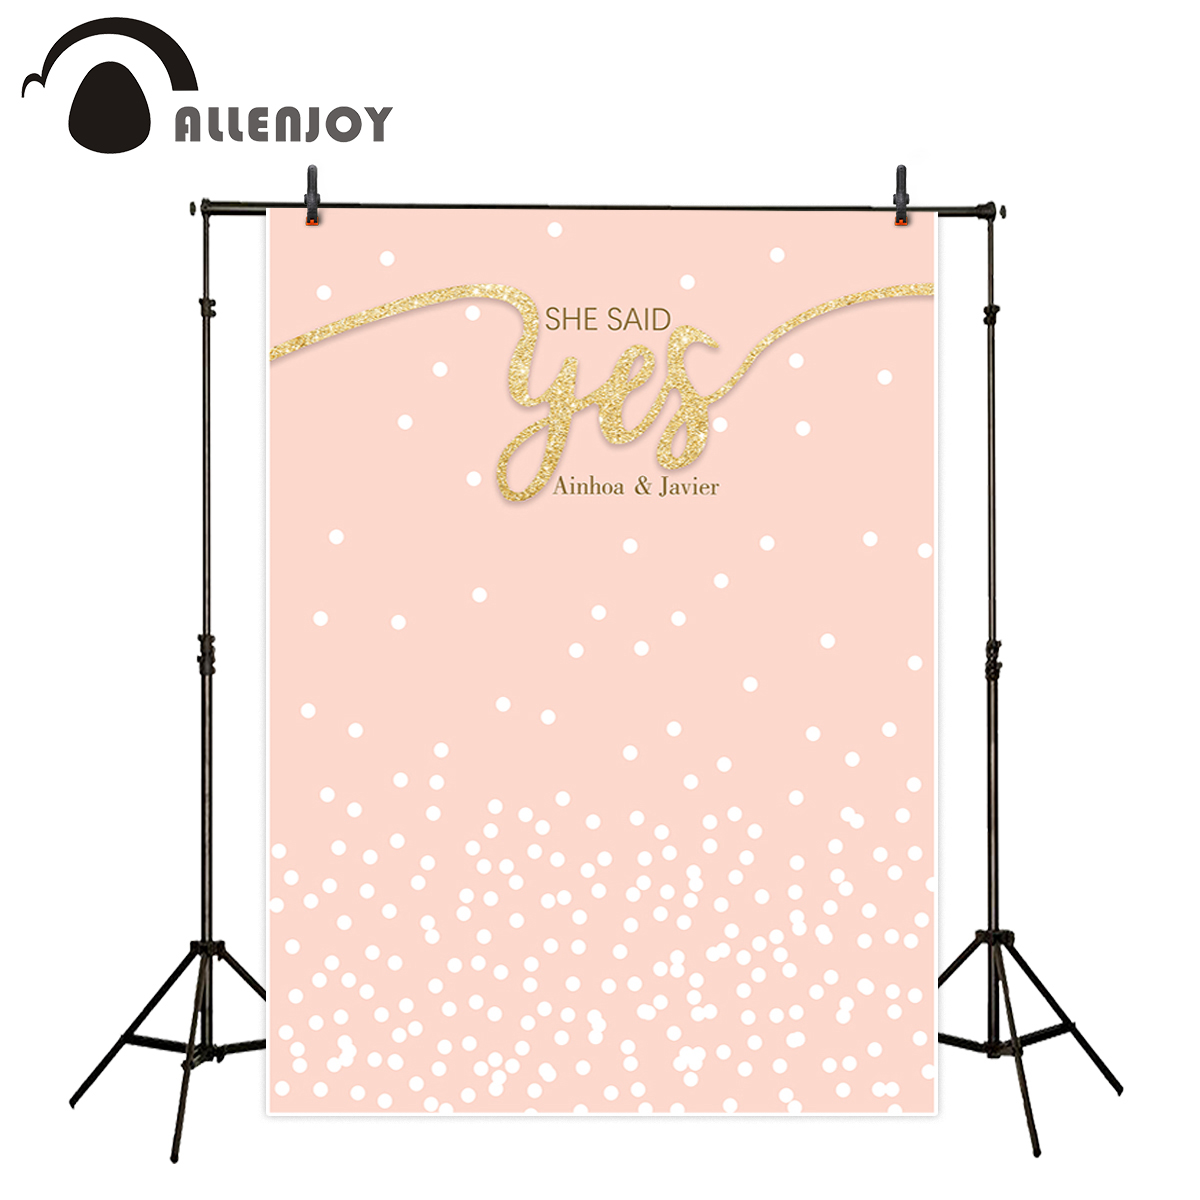 Allenjoy photography backdrop Pink spots cute golden romantic wedding new background photocall customize camera photo printed silver light светильник настенно потолочный silver light style next 804 40 7 nalxvo 1